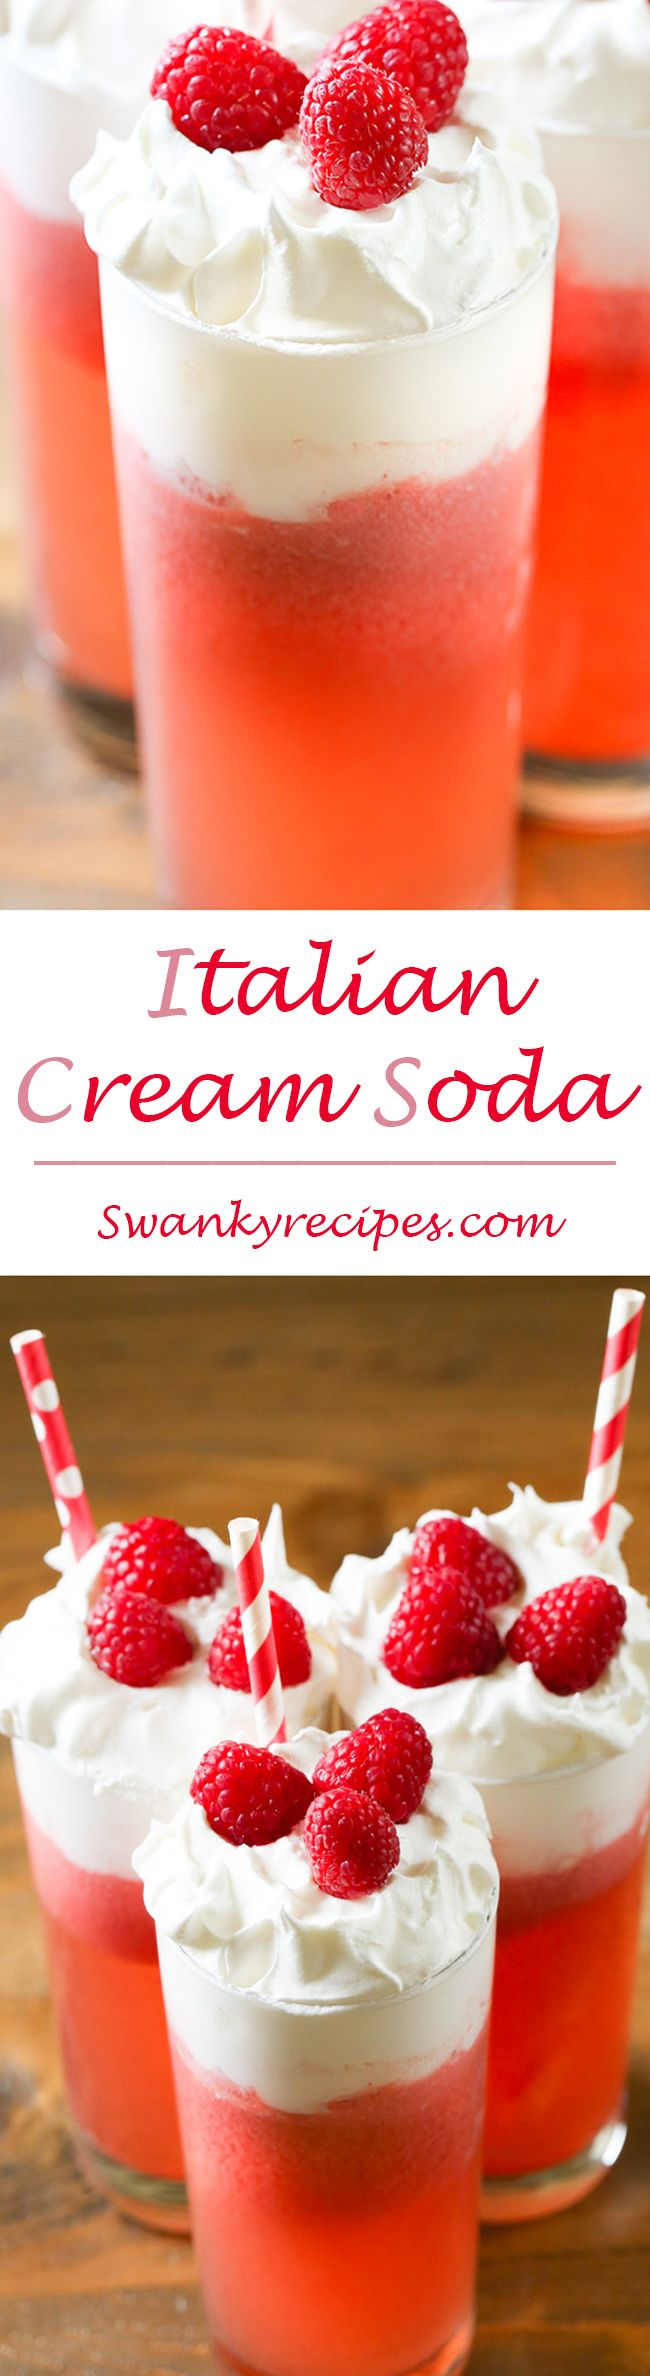 Italian Cream Soda - A fizzy drink made with club soda, raspberry syrup, pineapple juice and cream.  The classic drink recipe to share with friends this summer. ad